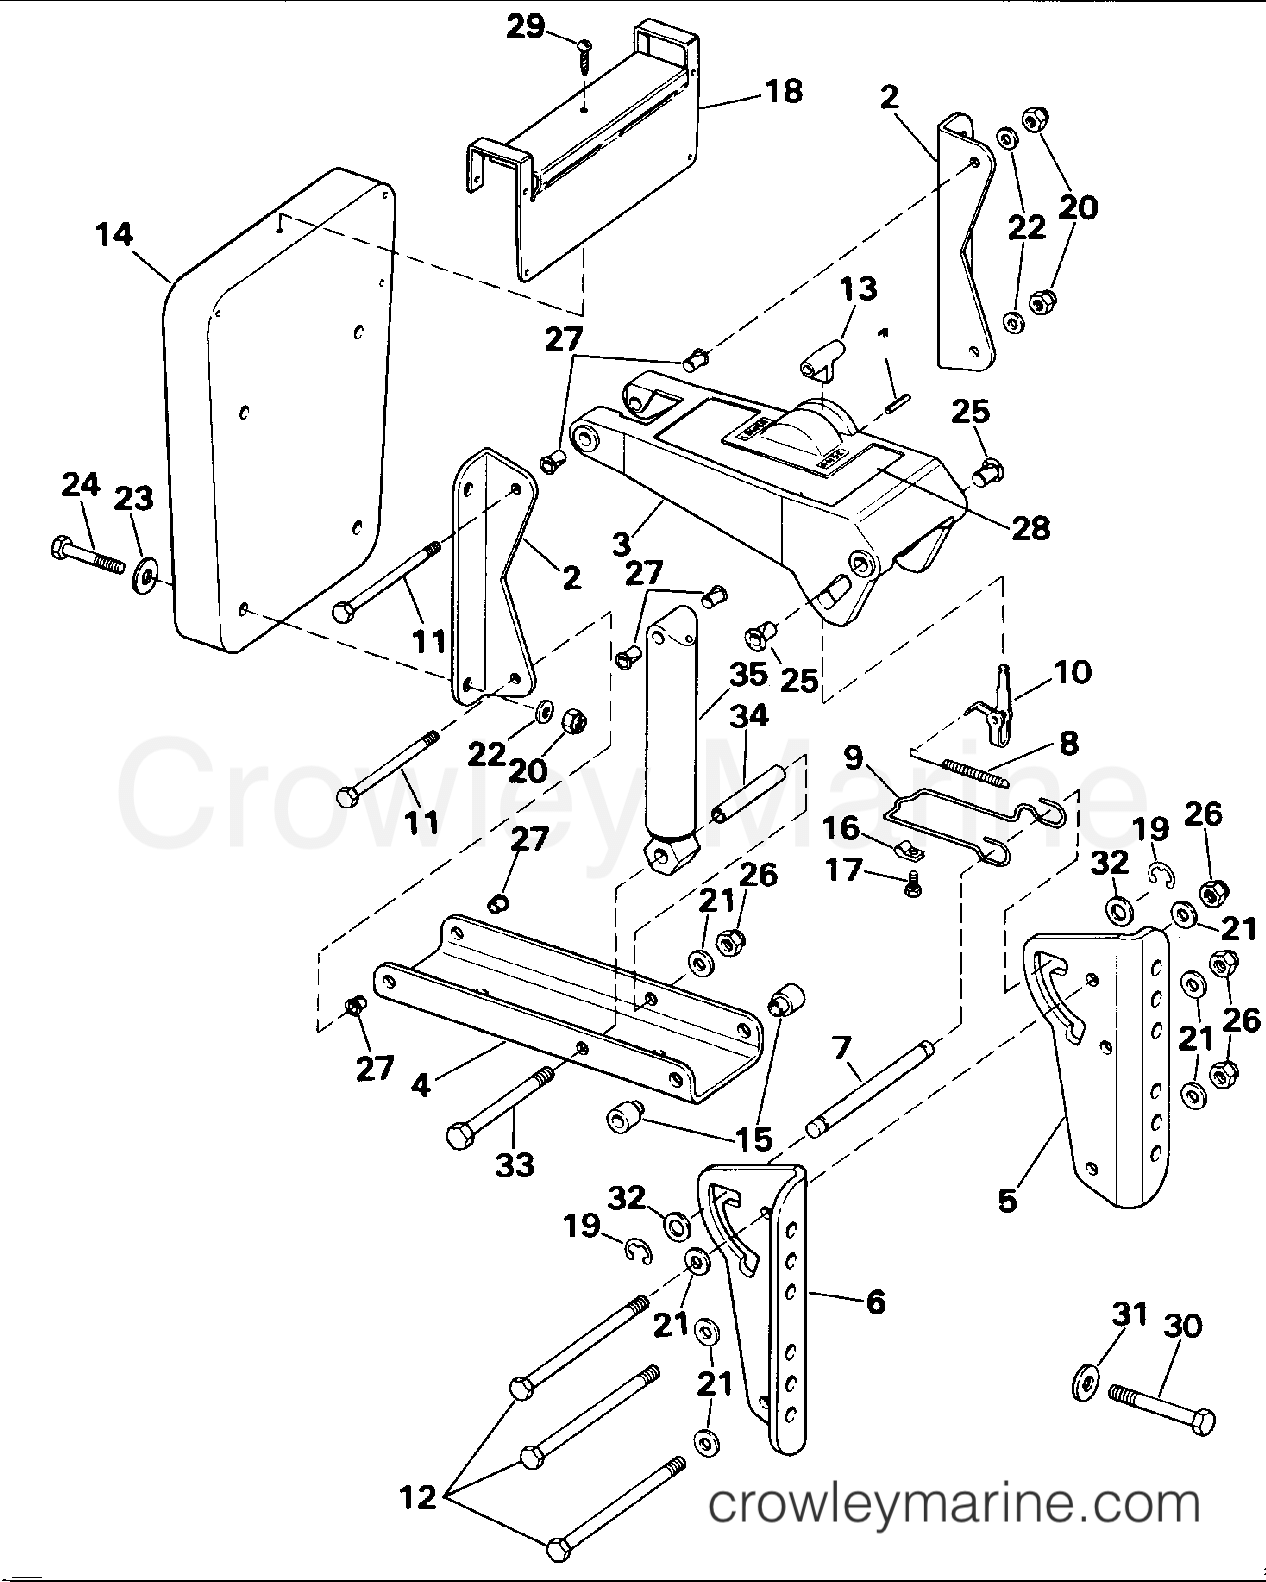 AUXILIARY MOTOR BRACKET KIT - 2 THRU 15